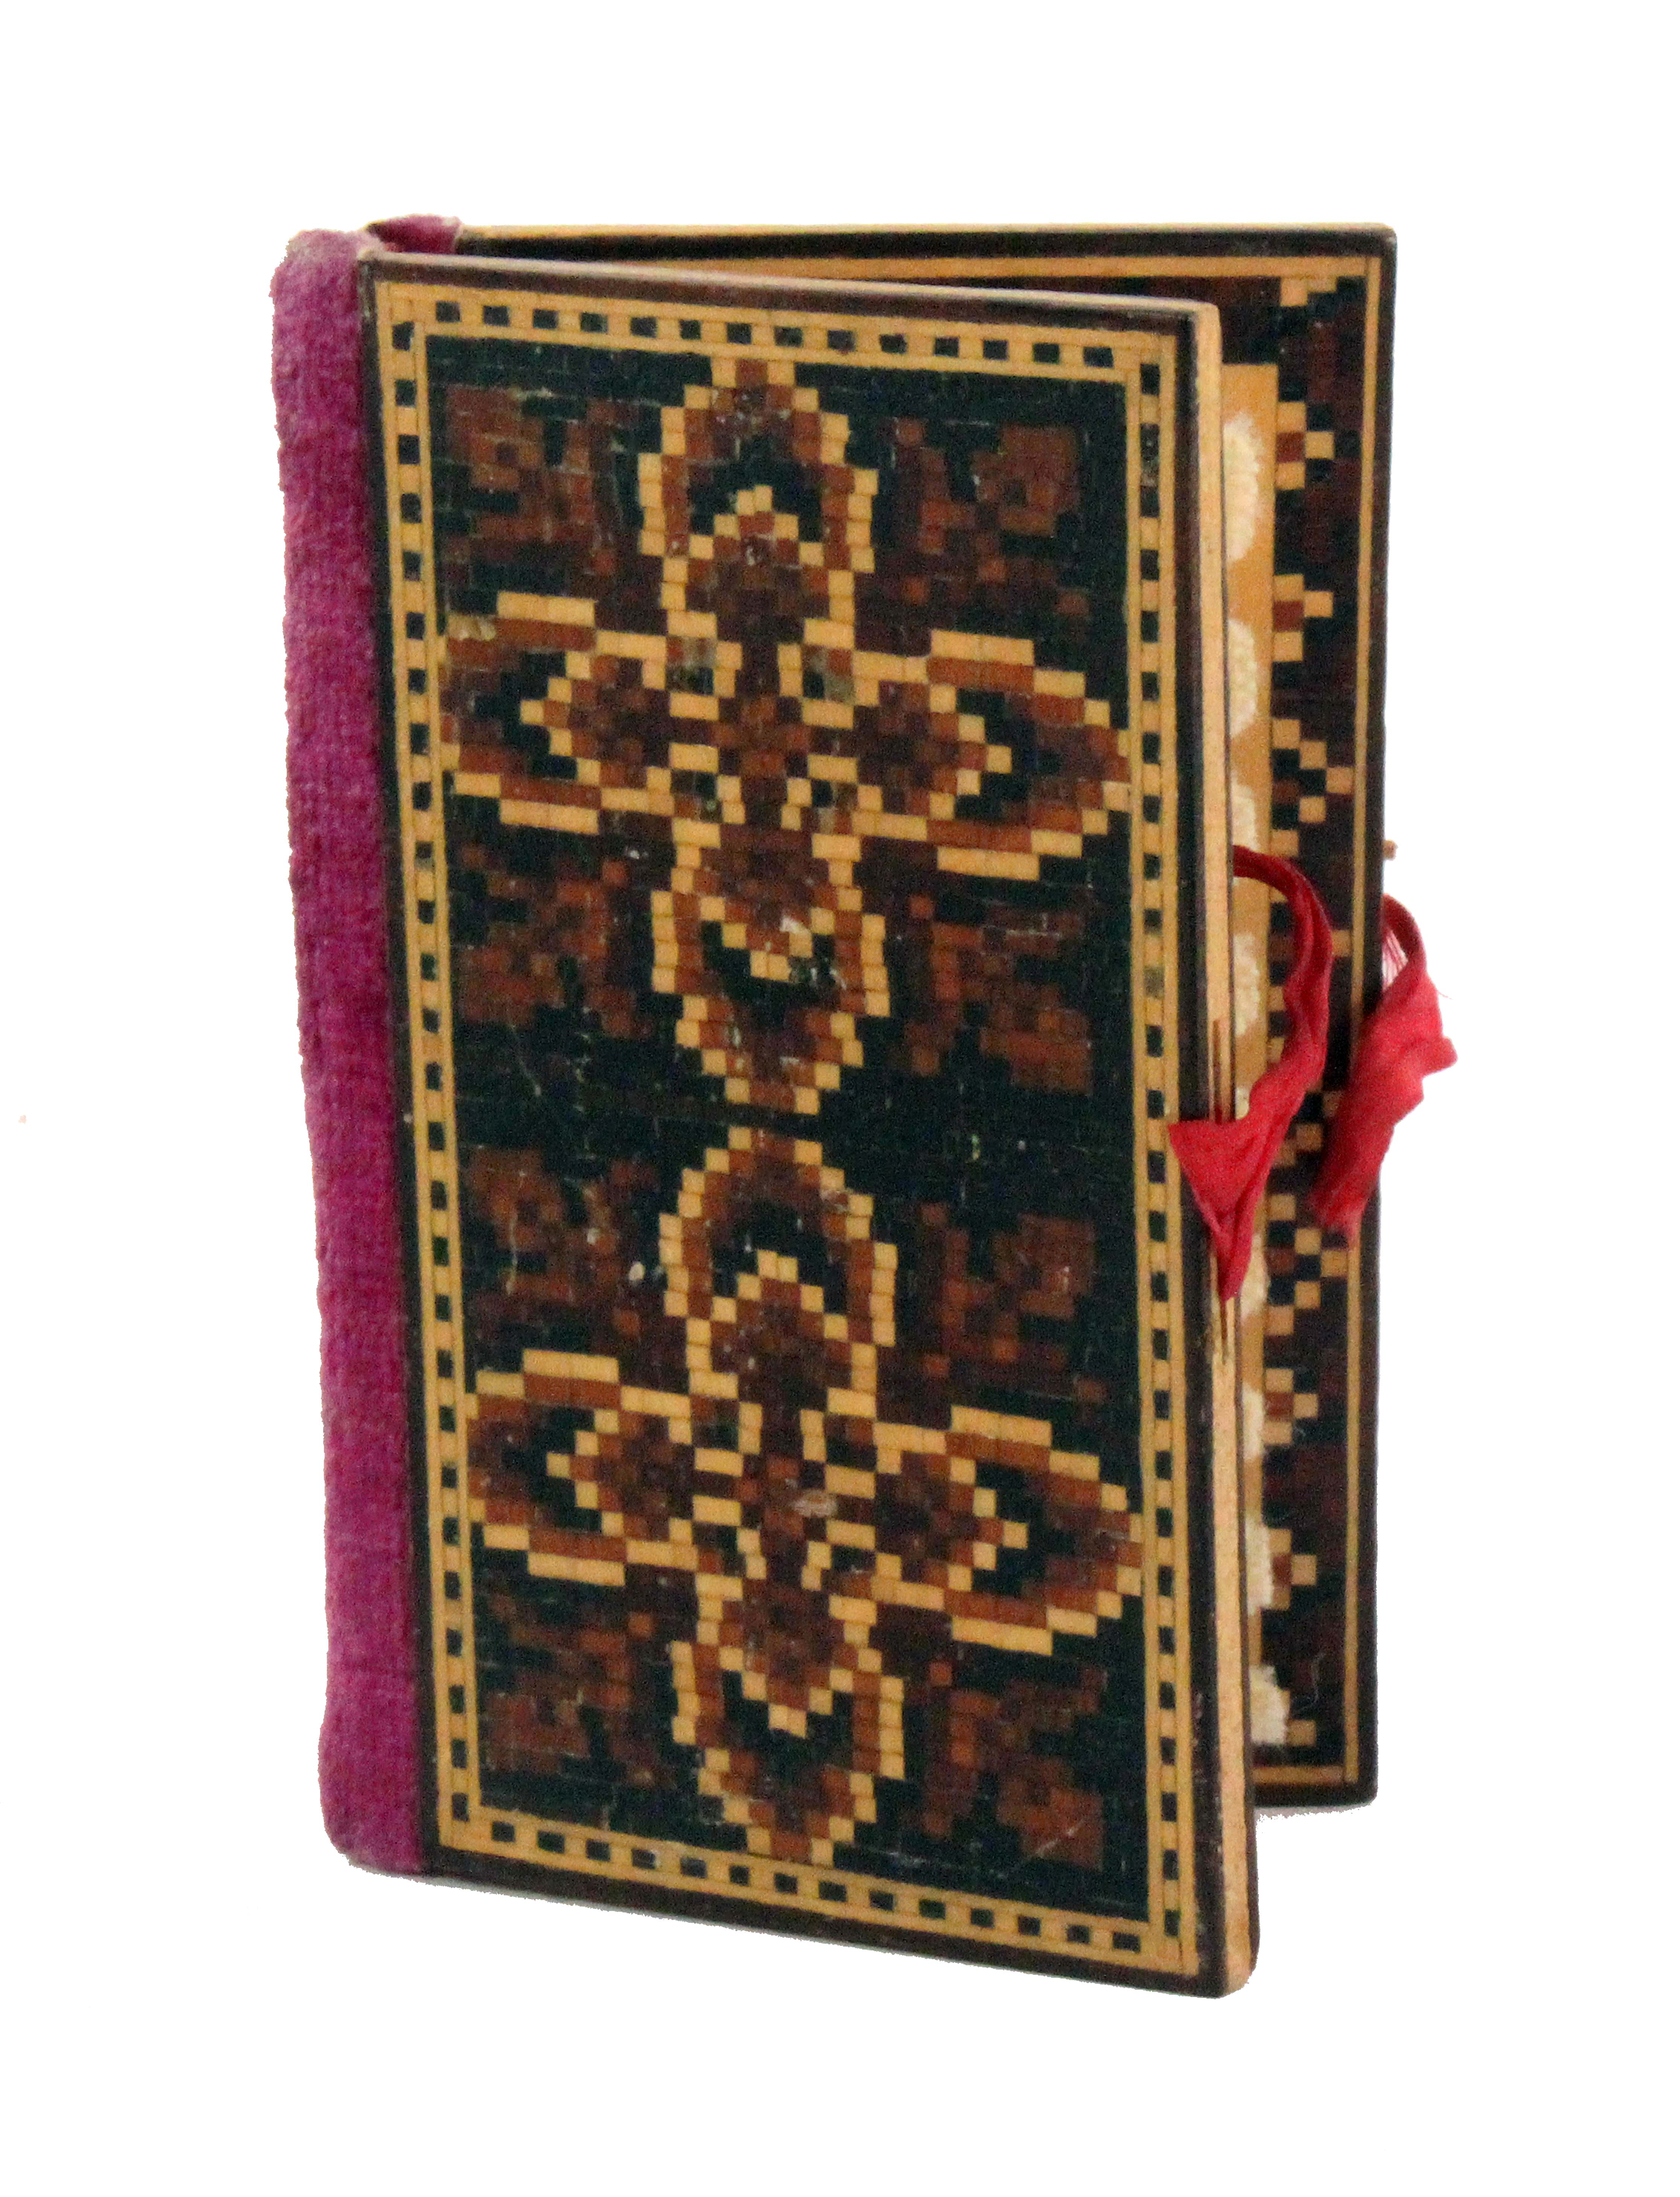 An attractive Tunbridge ware needle book, the covers in geometric mosaic, velvet spine, mosaic